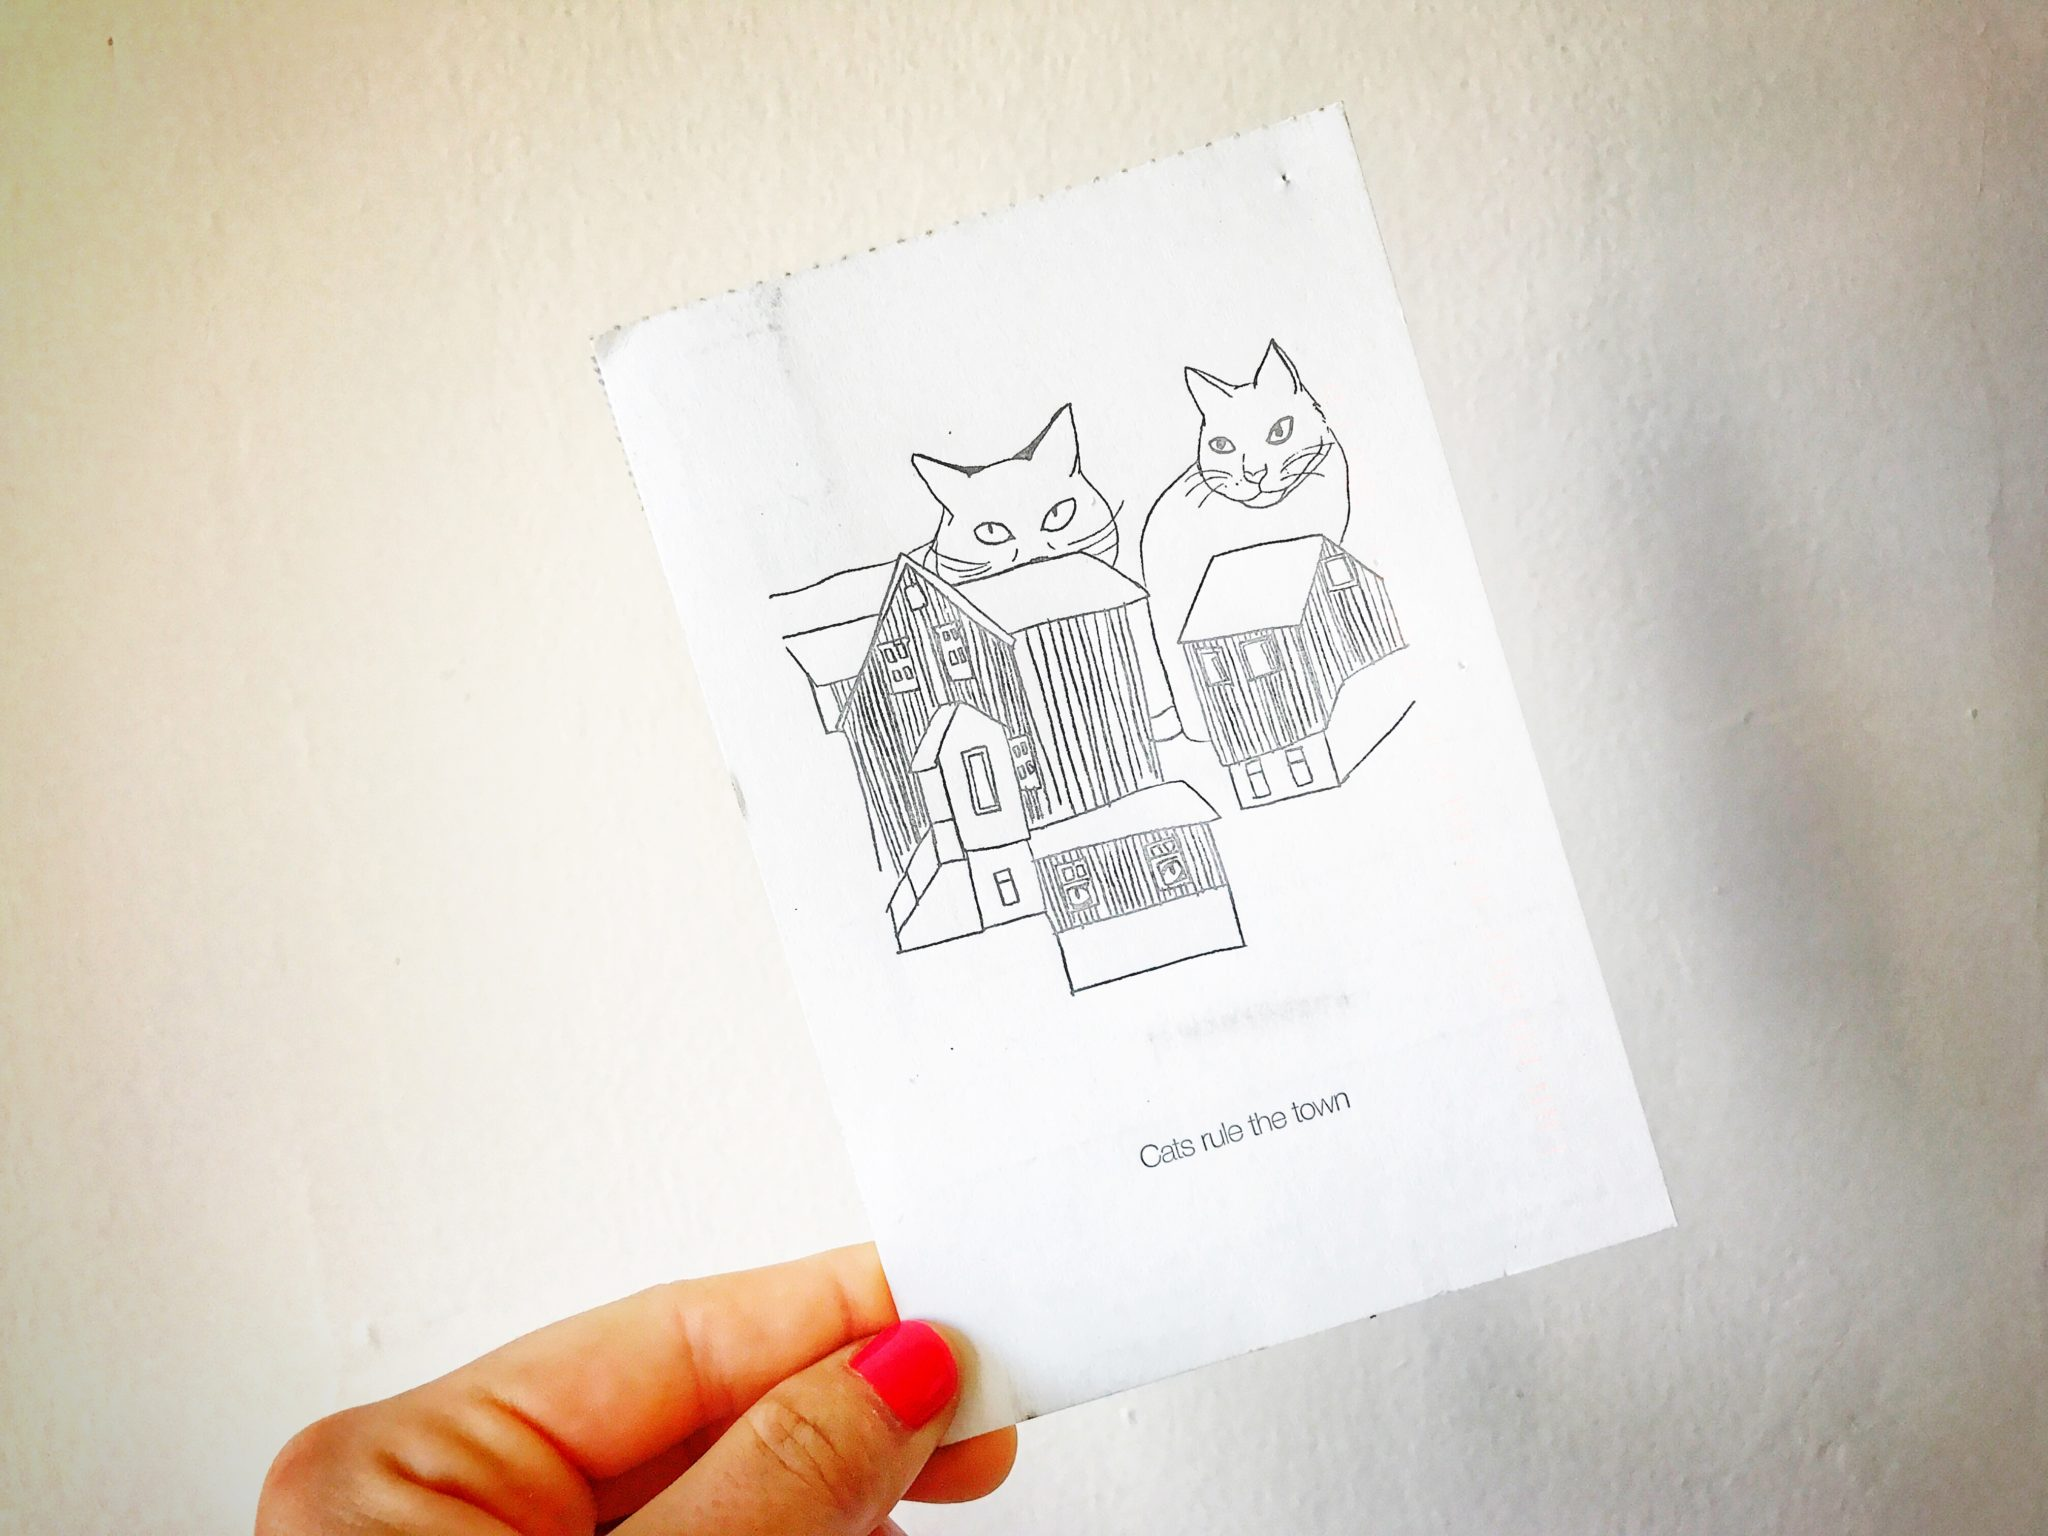 postcard image of cats ontop of homes in iceland